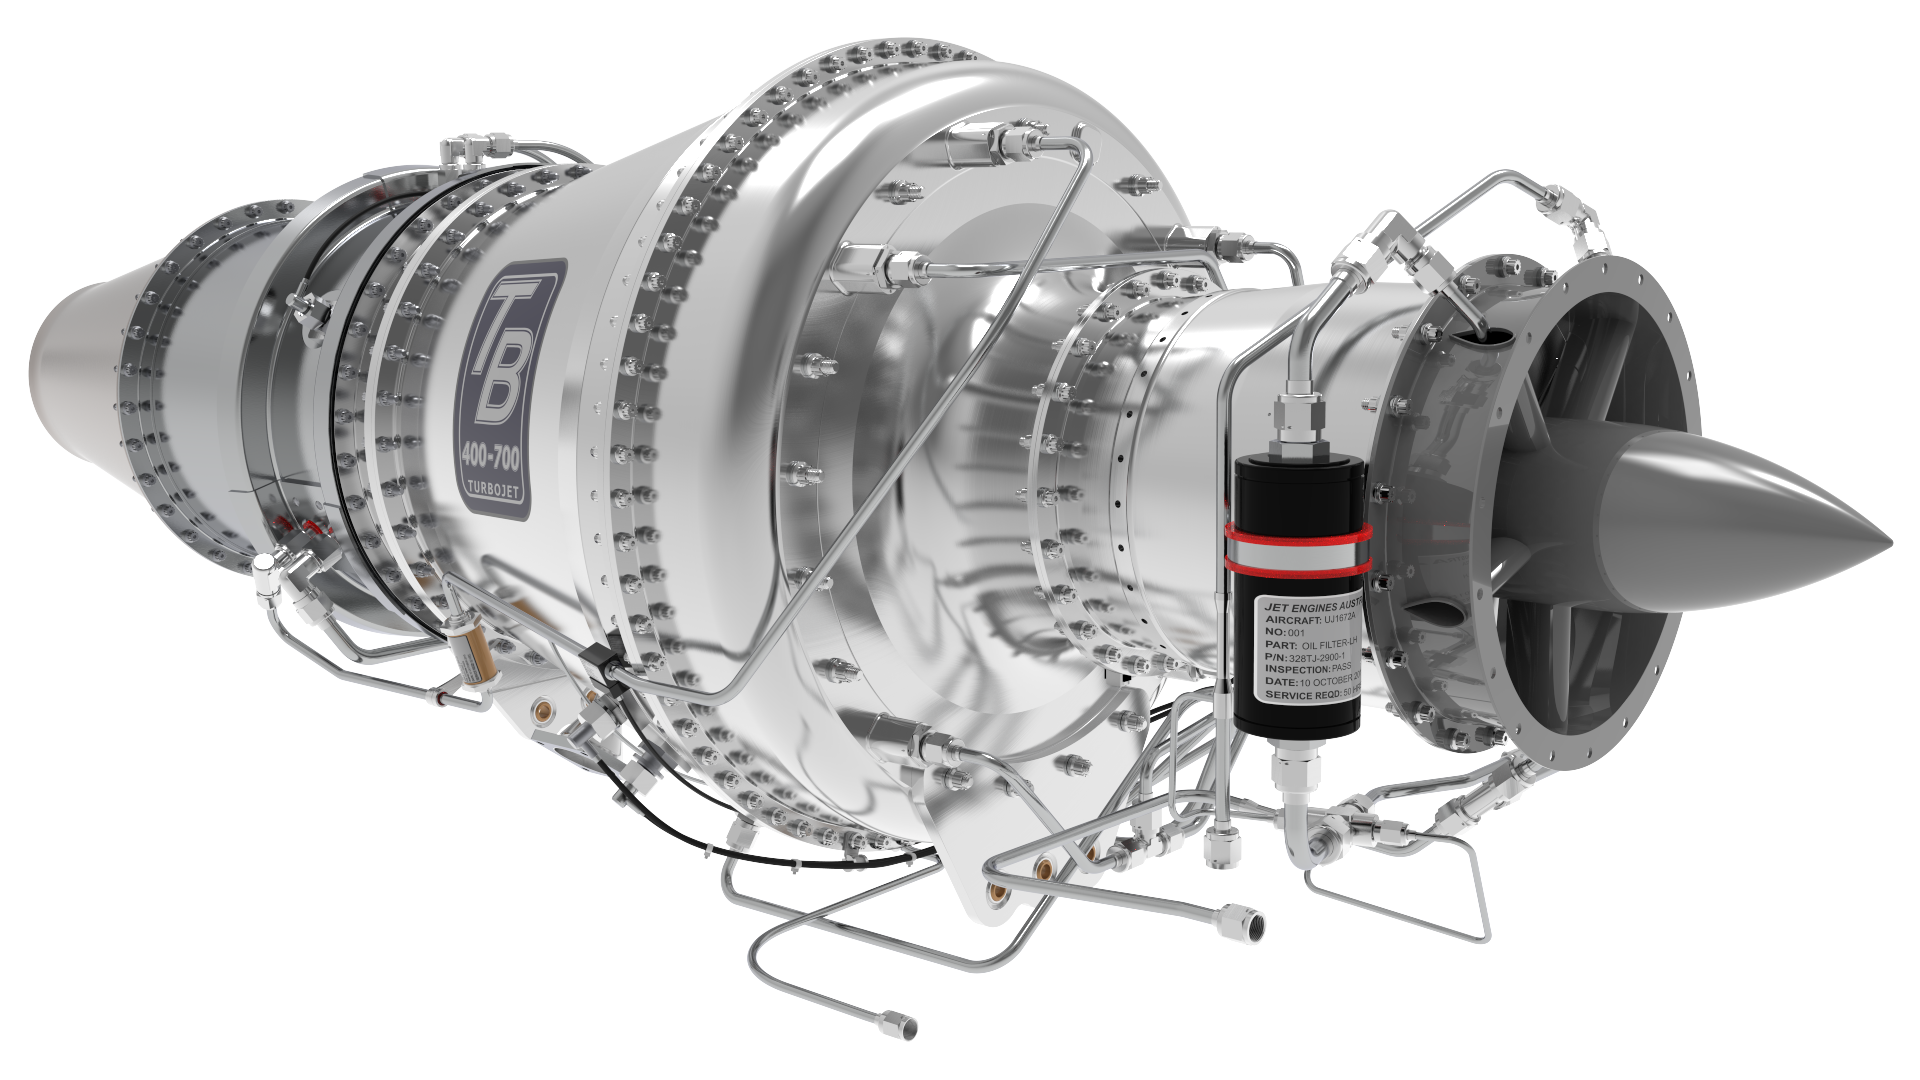 Jet Engine_High Res Renders 1.18